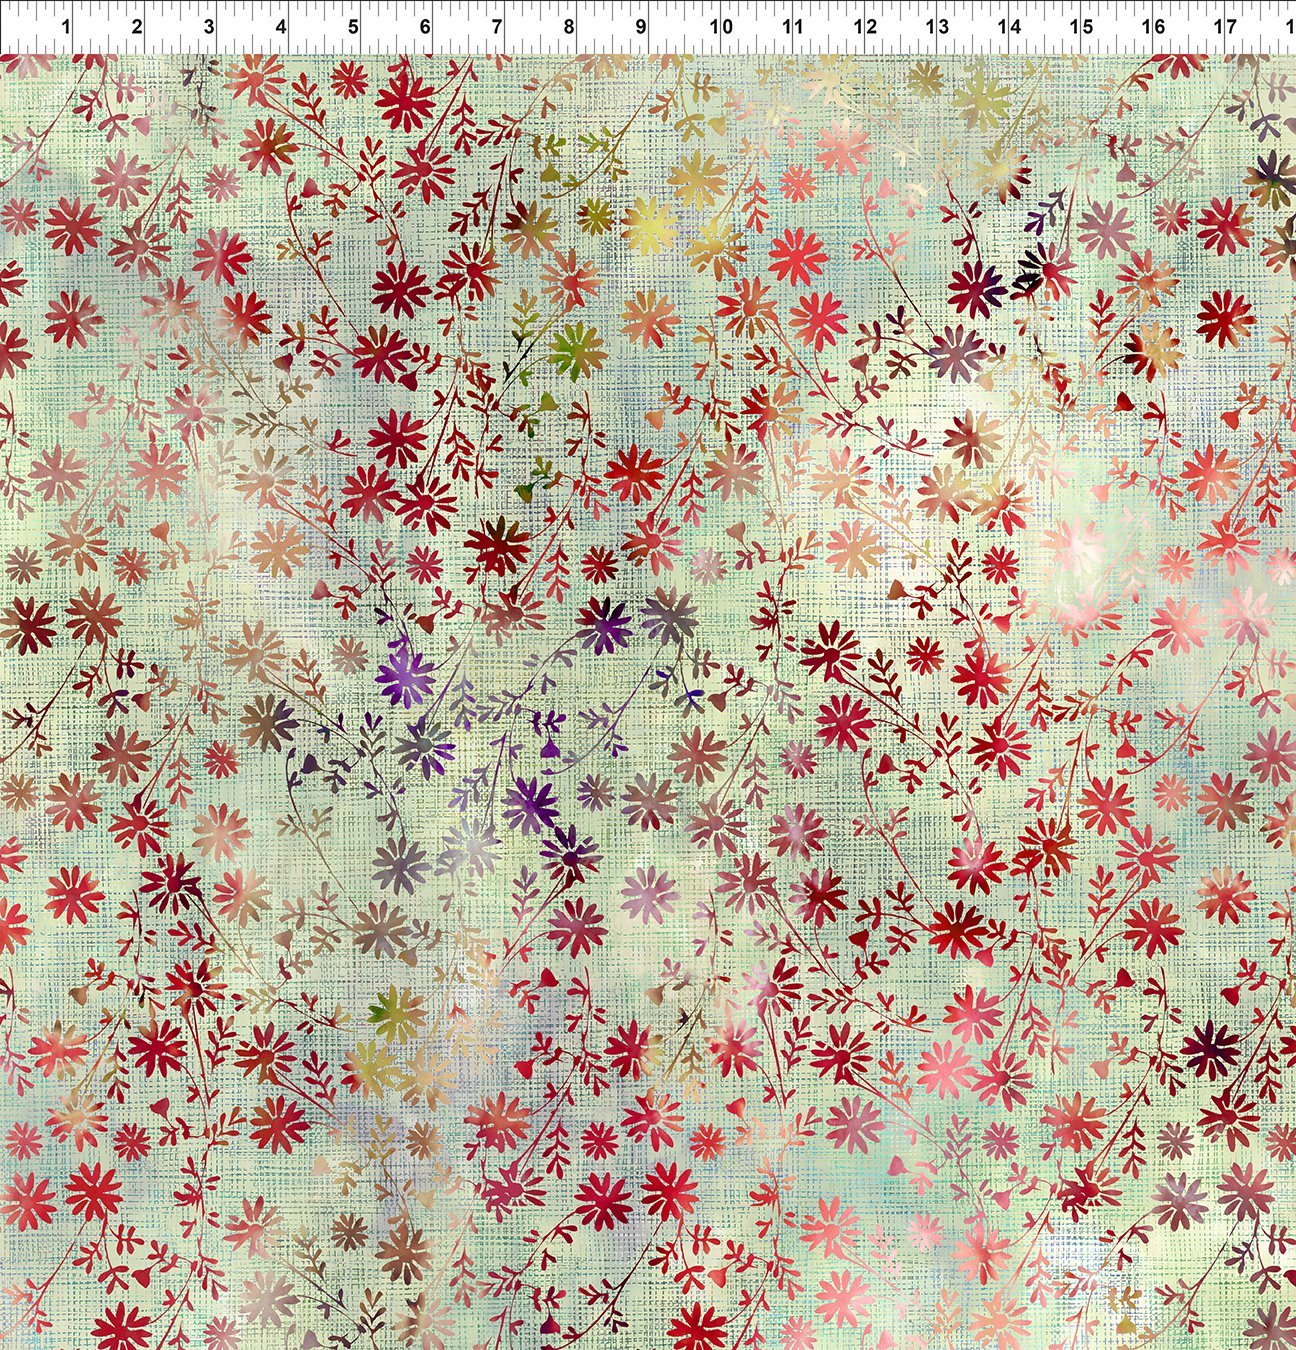 6HVN-1 Haven - Wildflower - Multi by Jason Yenter for In The Beginning Fabric